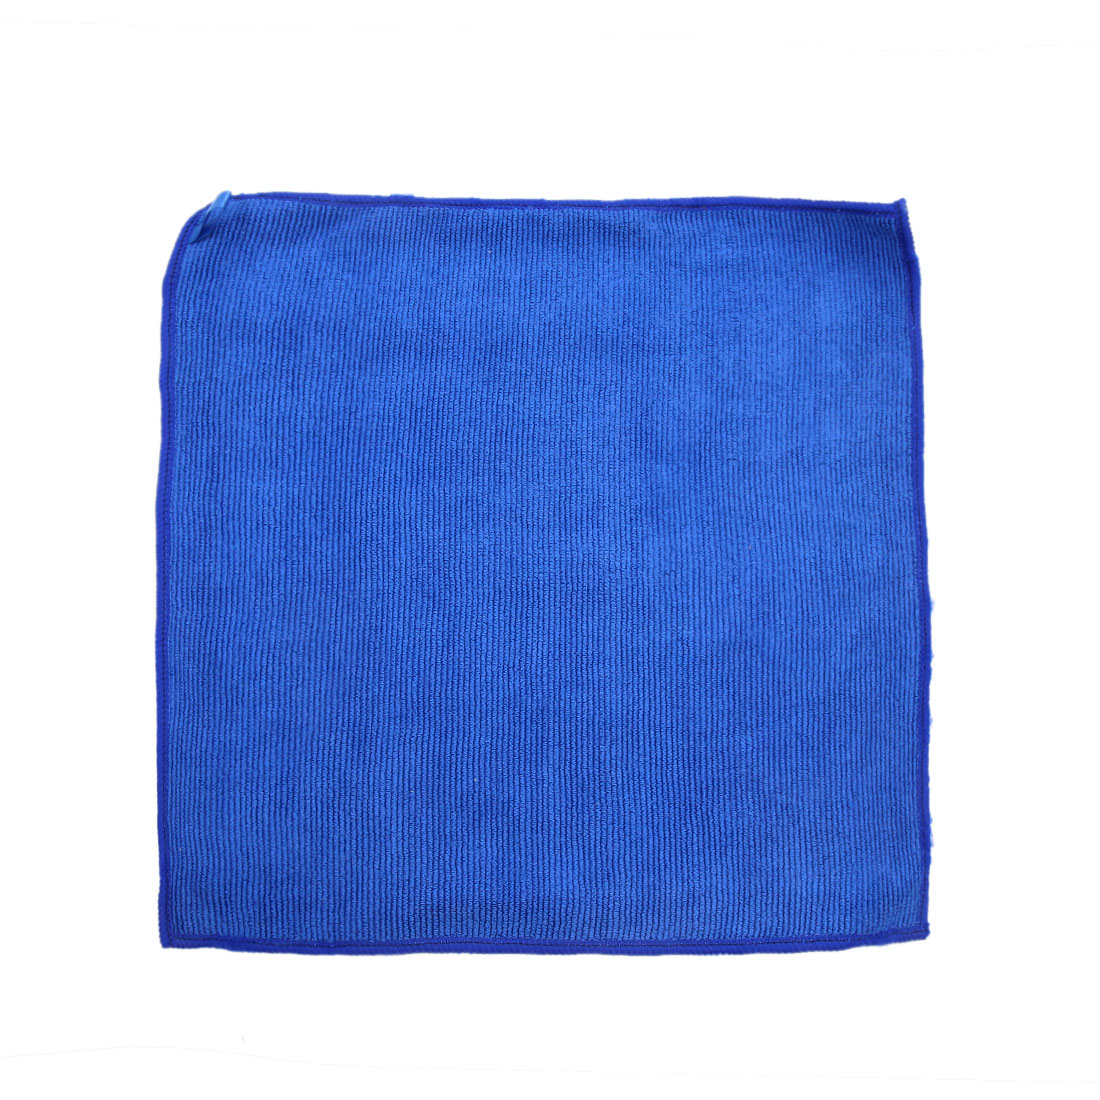 Universal Clean Clay Design Microfiber Auto Car Towel Drying Washing Cloth Blue